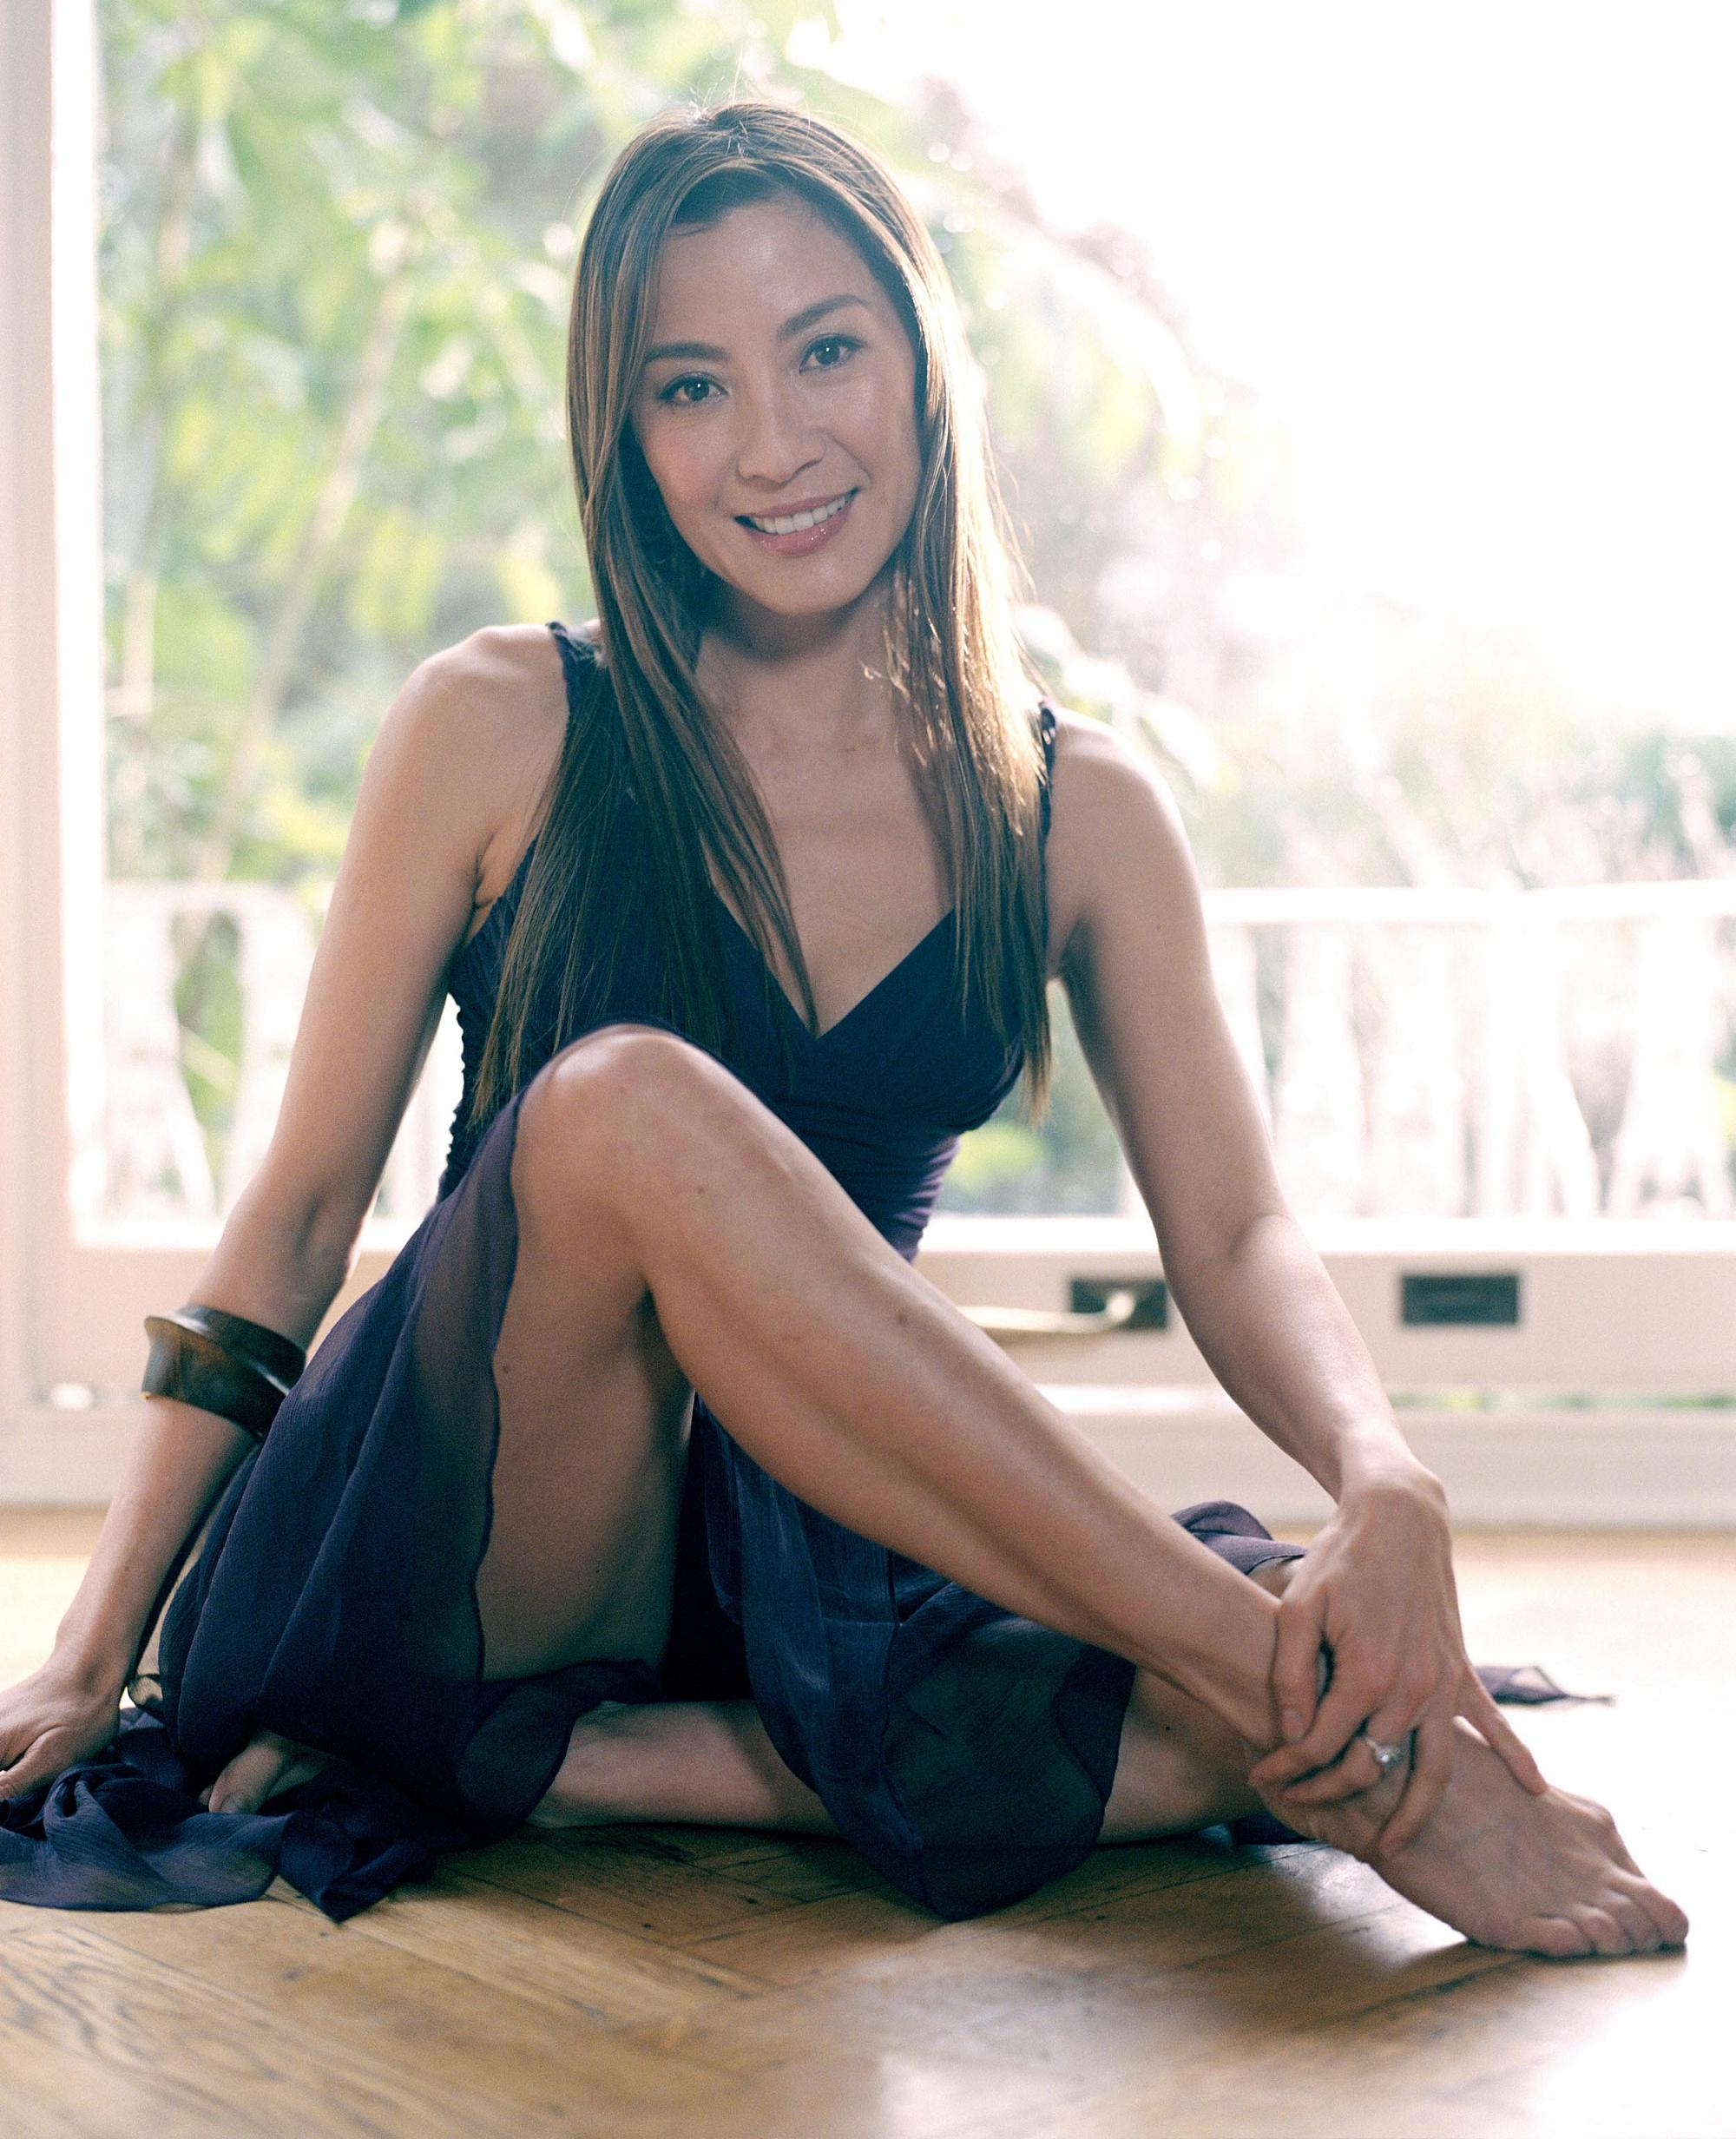 http://www.theplace.ru/archive/michelle_yeoh/img/michelle_yeoh00006_1.jpg